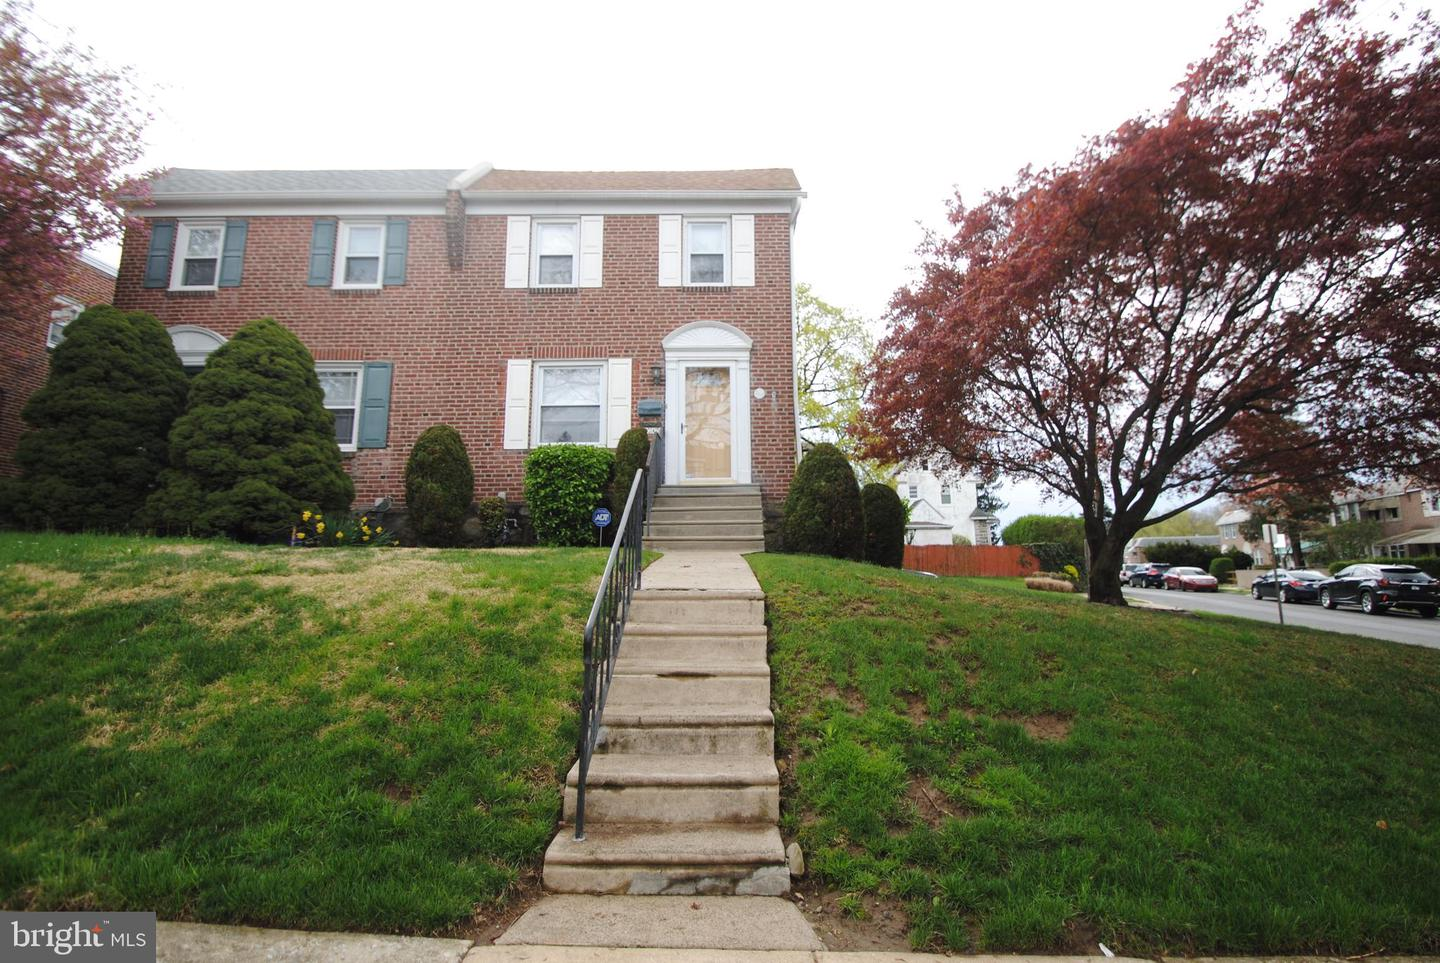 3848 Marshall Road Drexel Hill, PA 19026